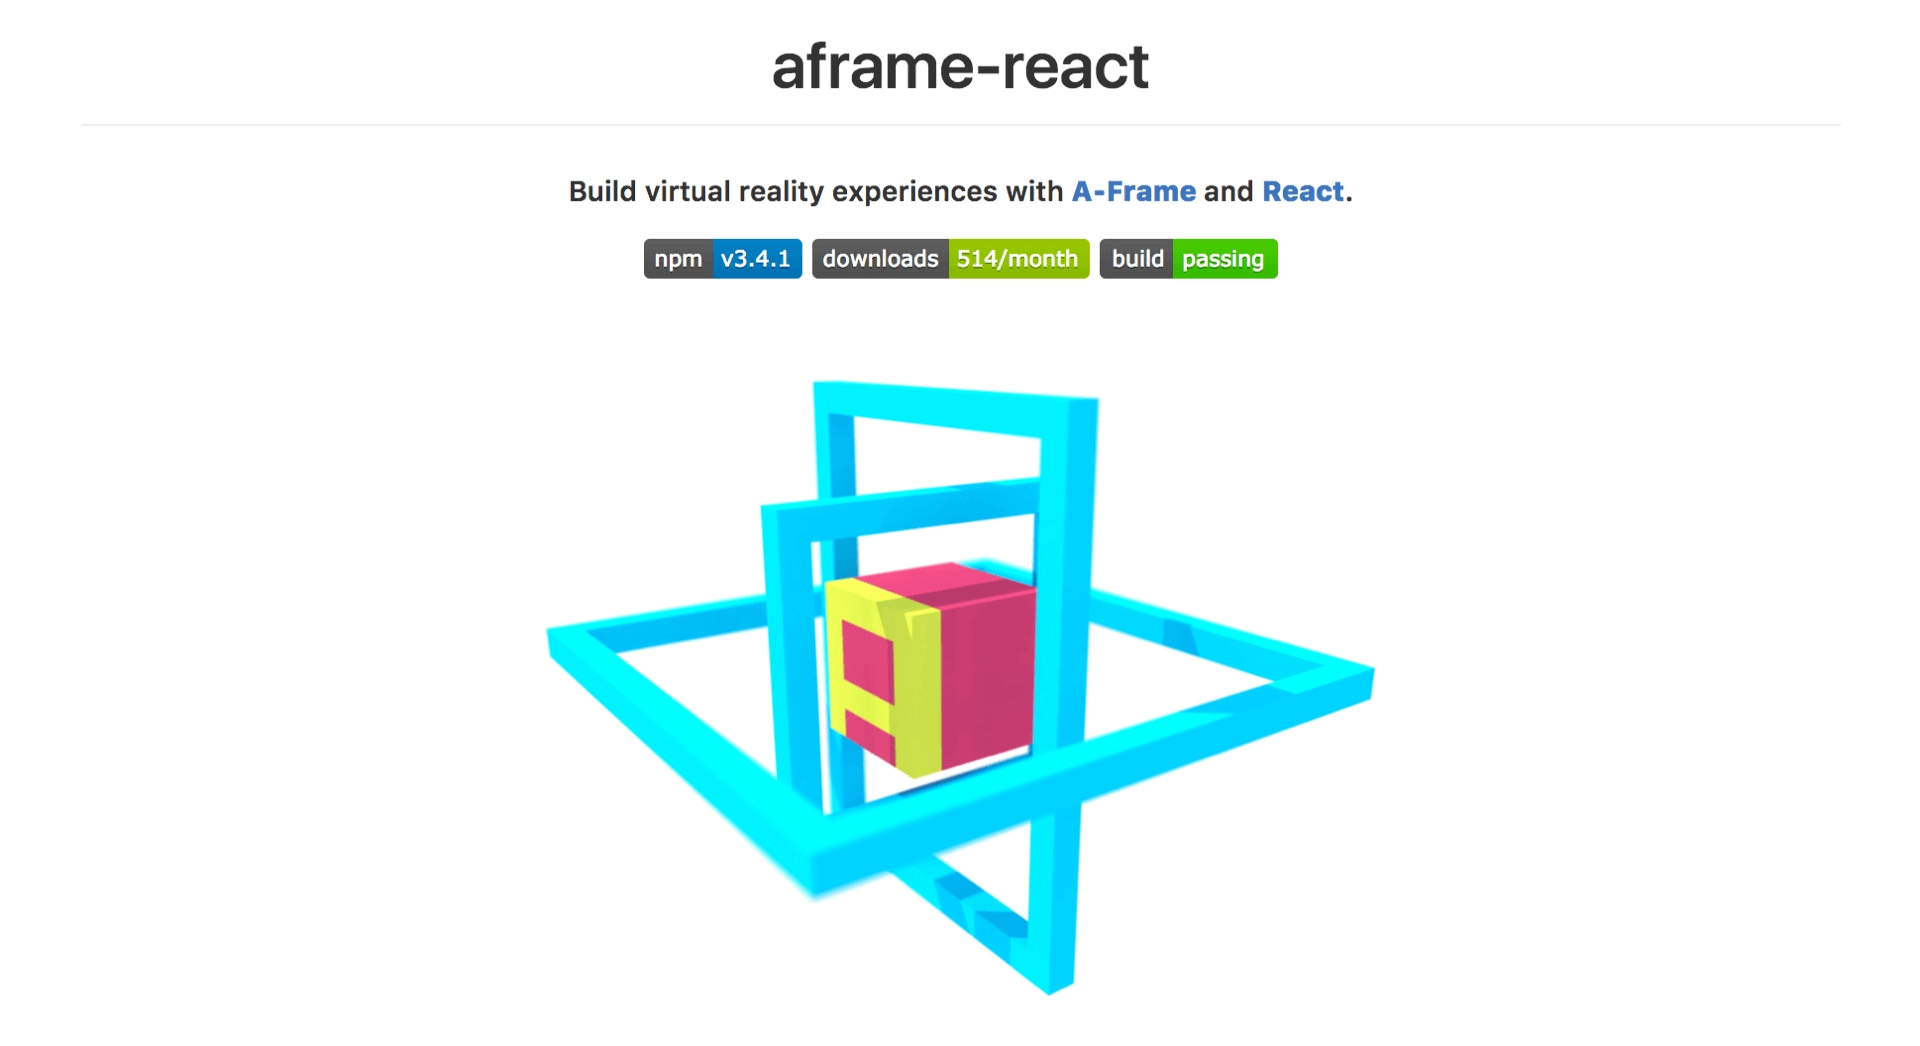 aframe-react